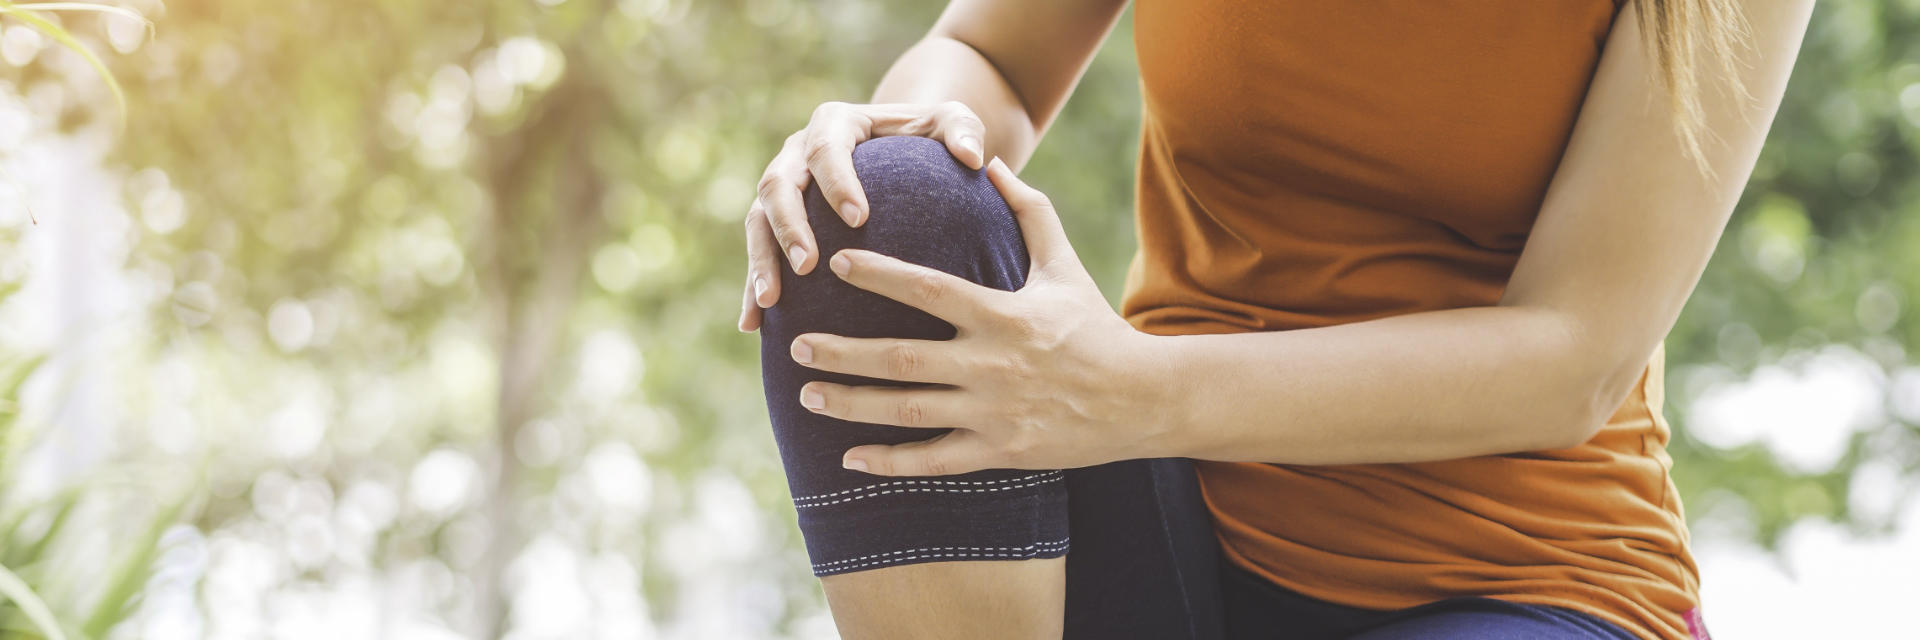 A woman with knee pain touching the painful knee.